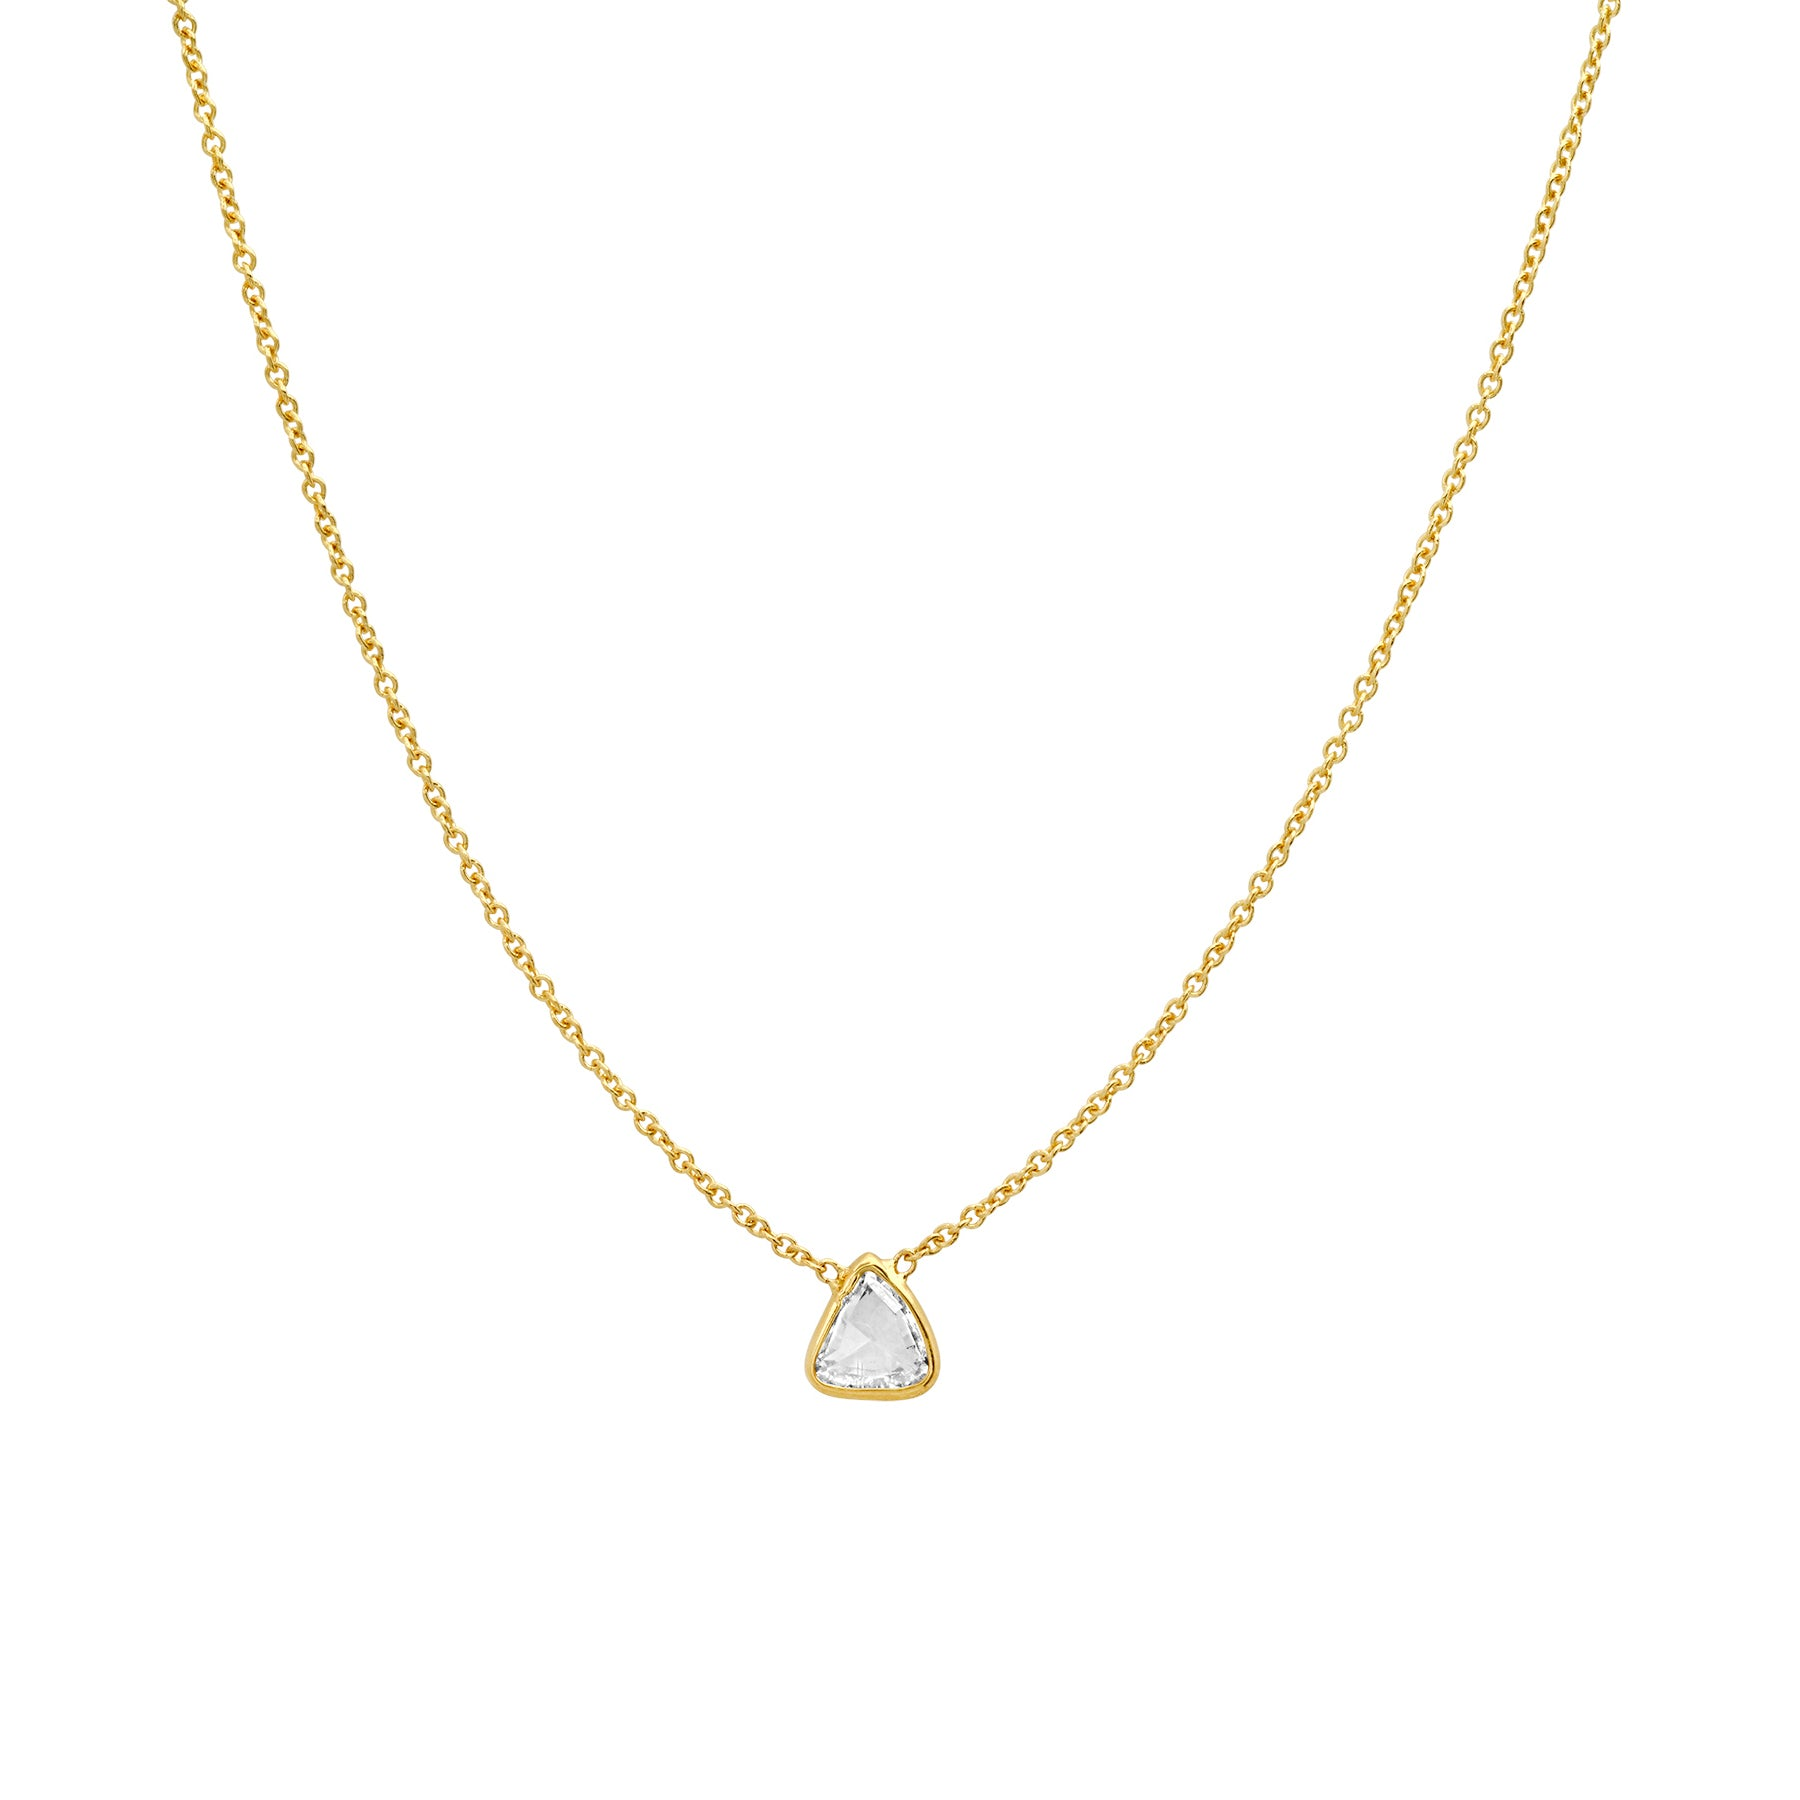 Rose Cut Diamond Necklace No. 52